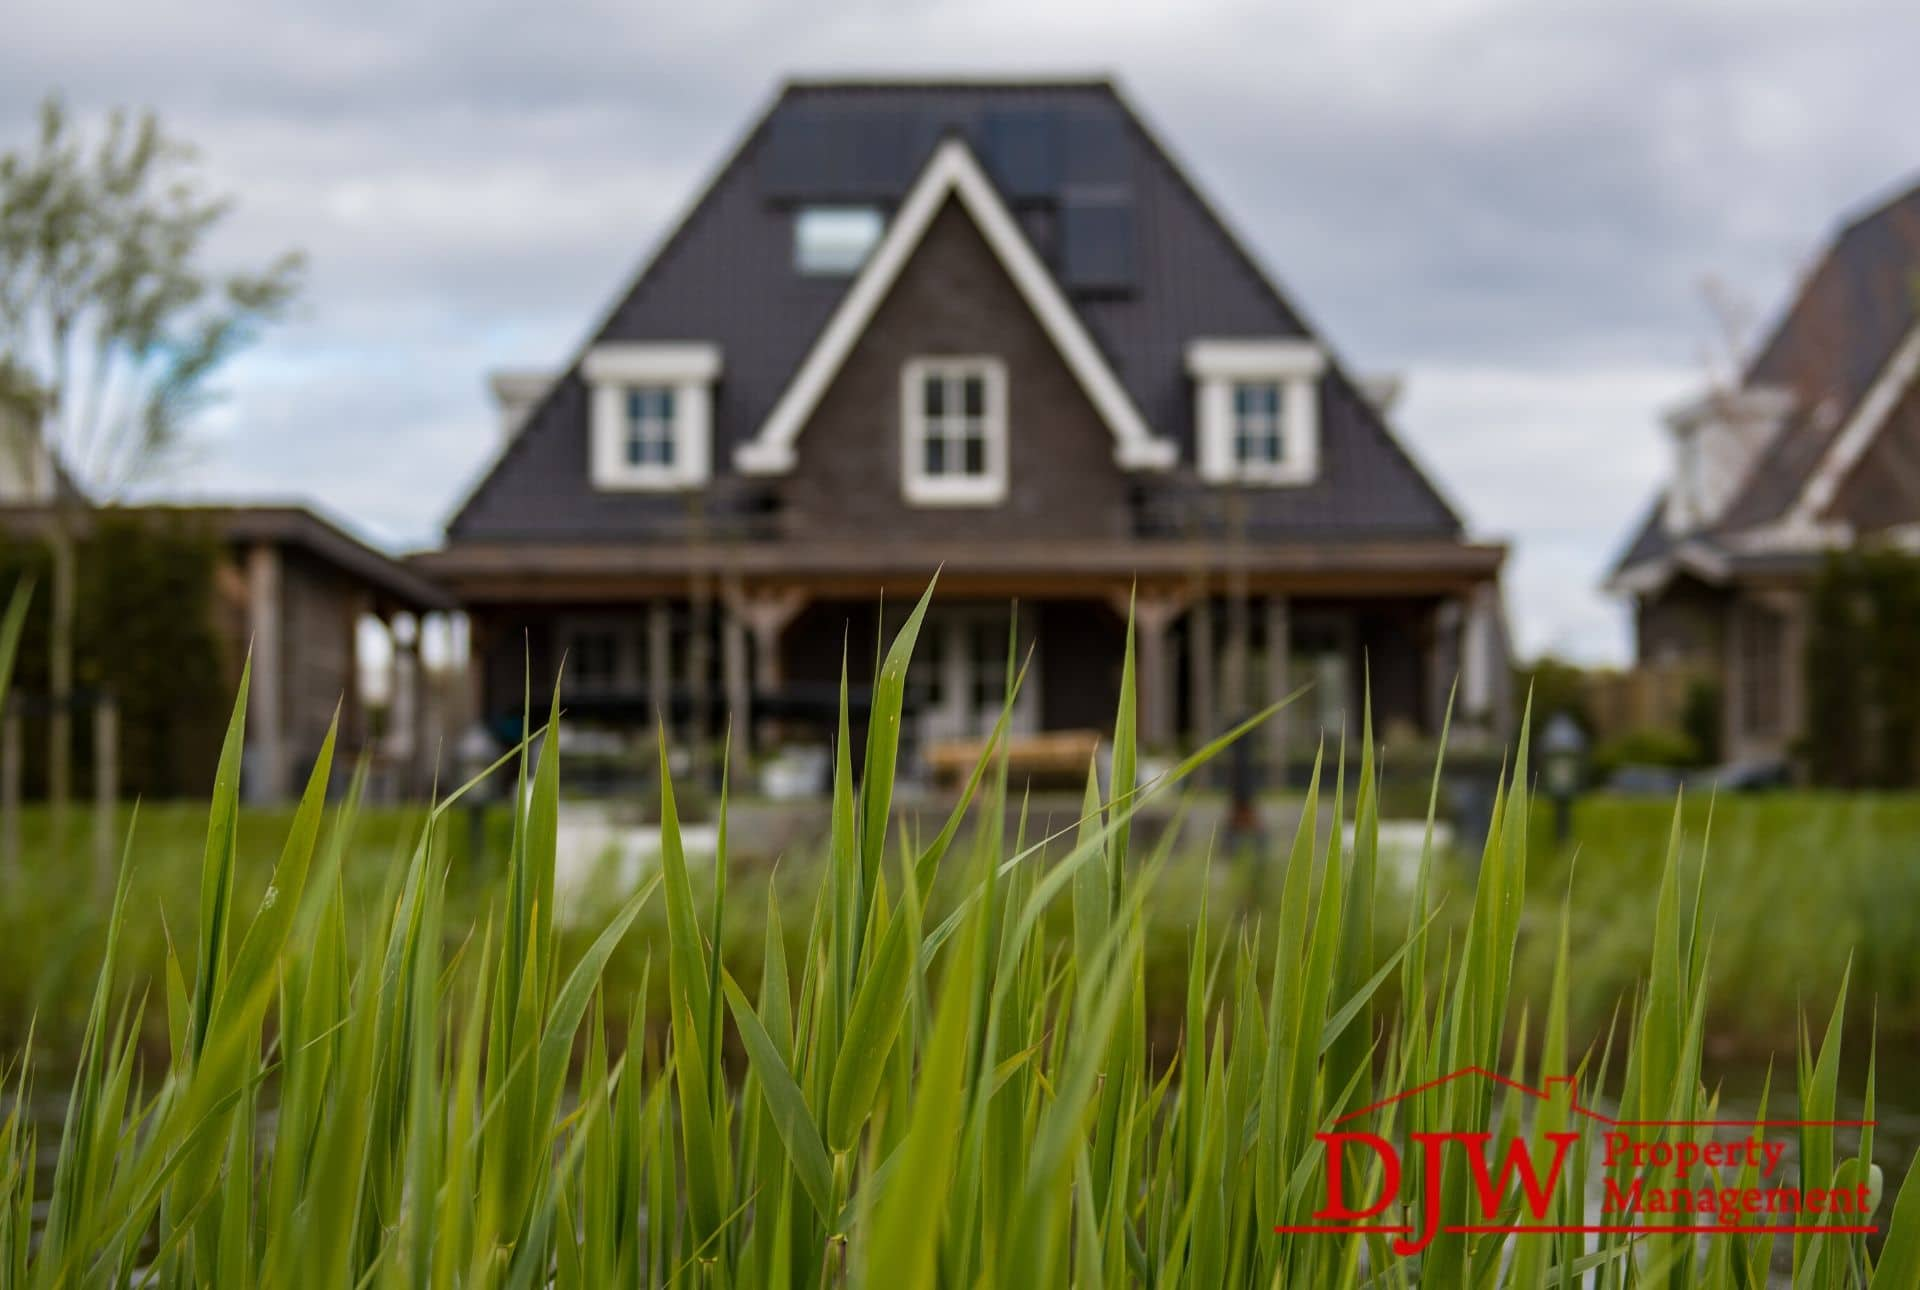 Focus on grass, with a home in the background.